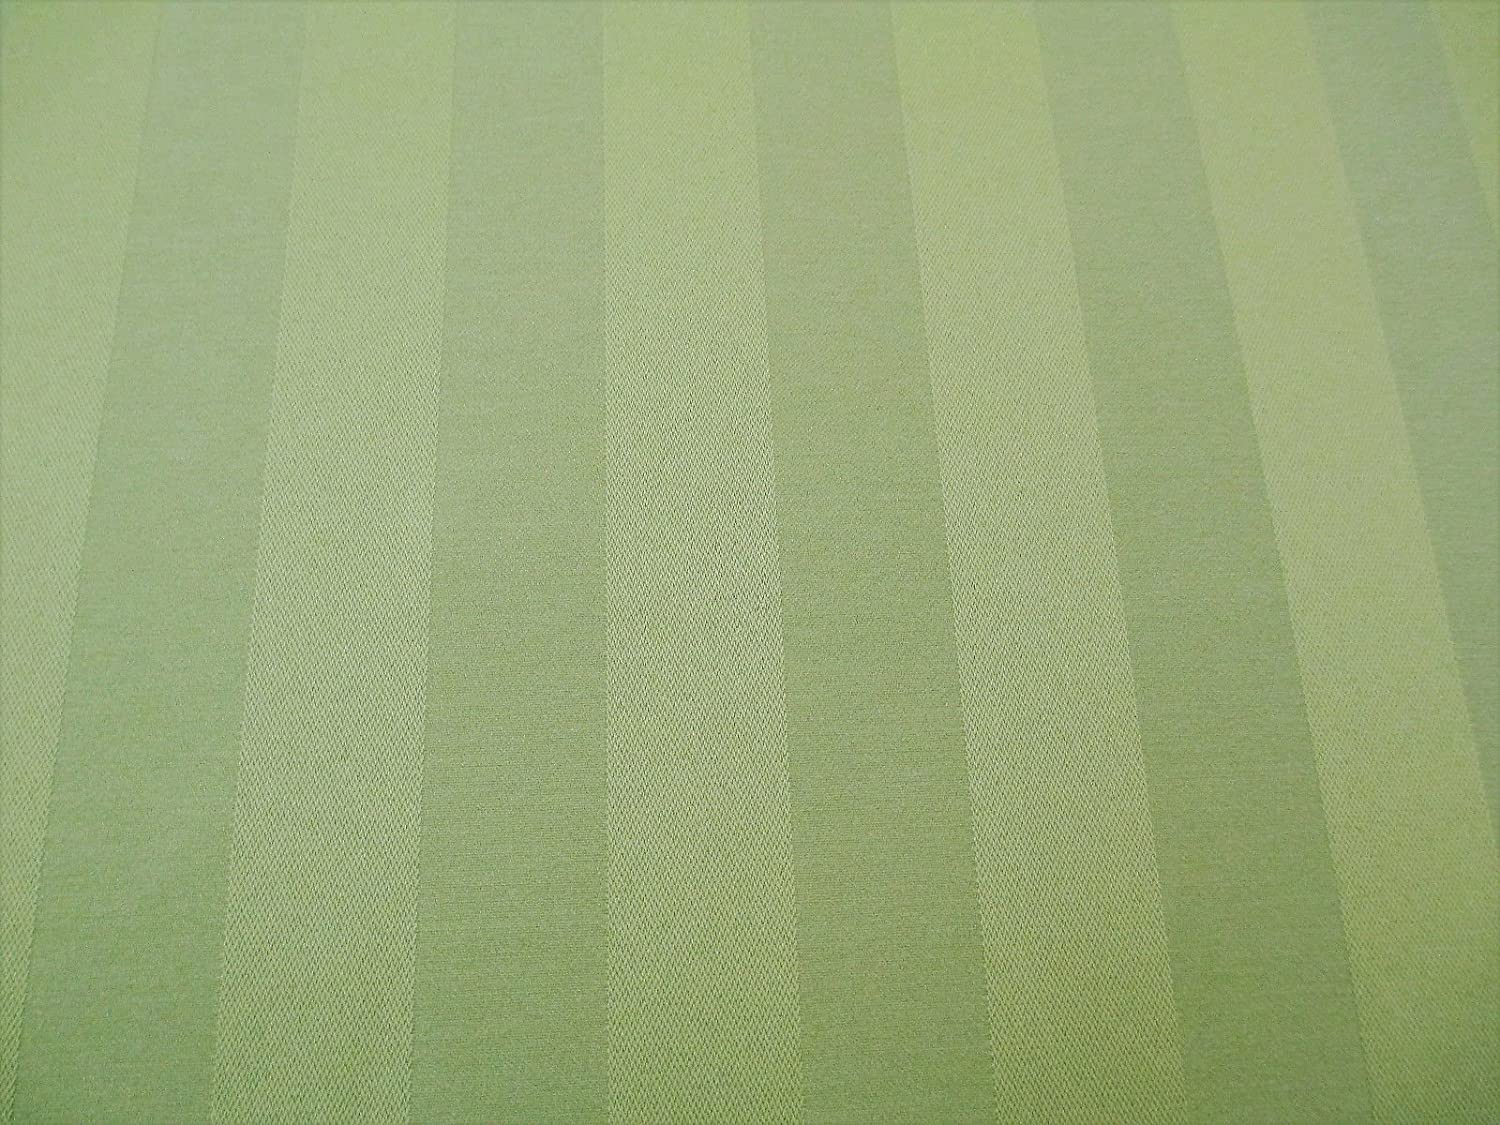 10 Yard Lot Discount Fabric Tablecloth New Shipping Free Shipping Brocade Stripe Sage Brand Cheap Sale Venue Satin